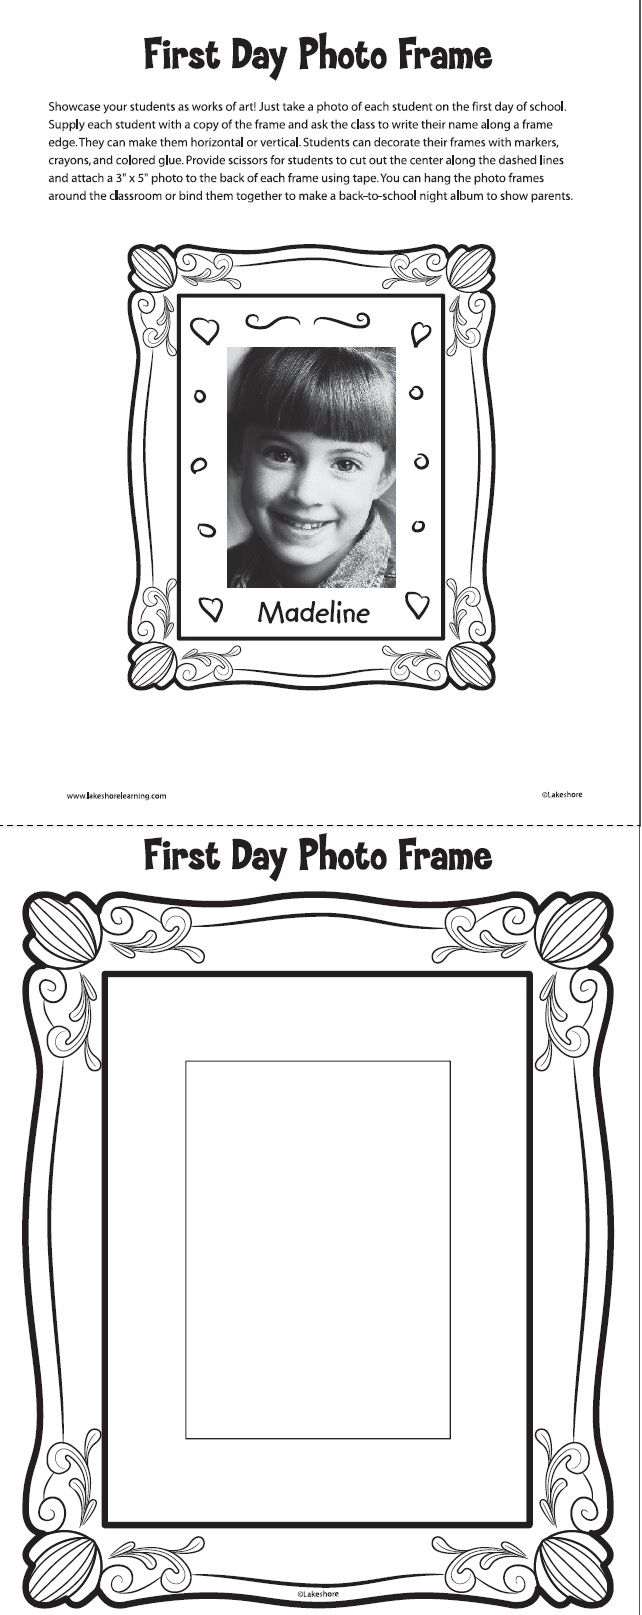 First Day Photo Frame Printable from Lakeshore. #